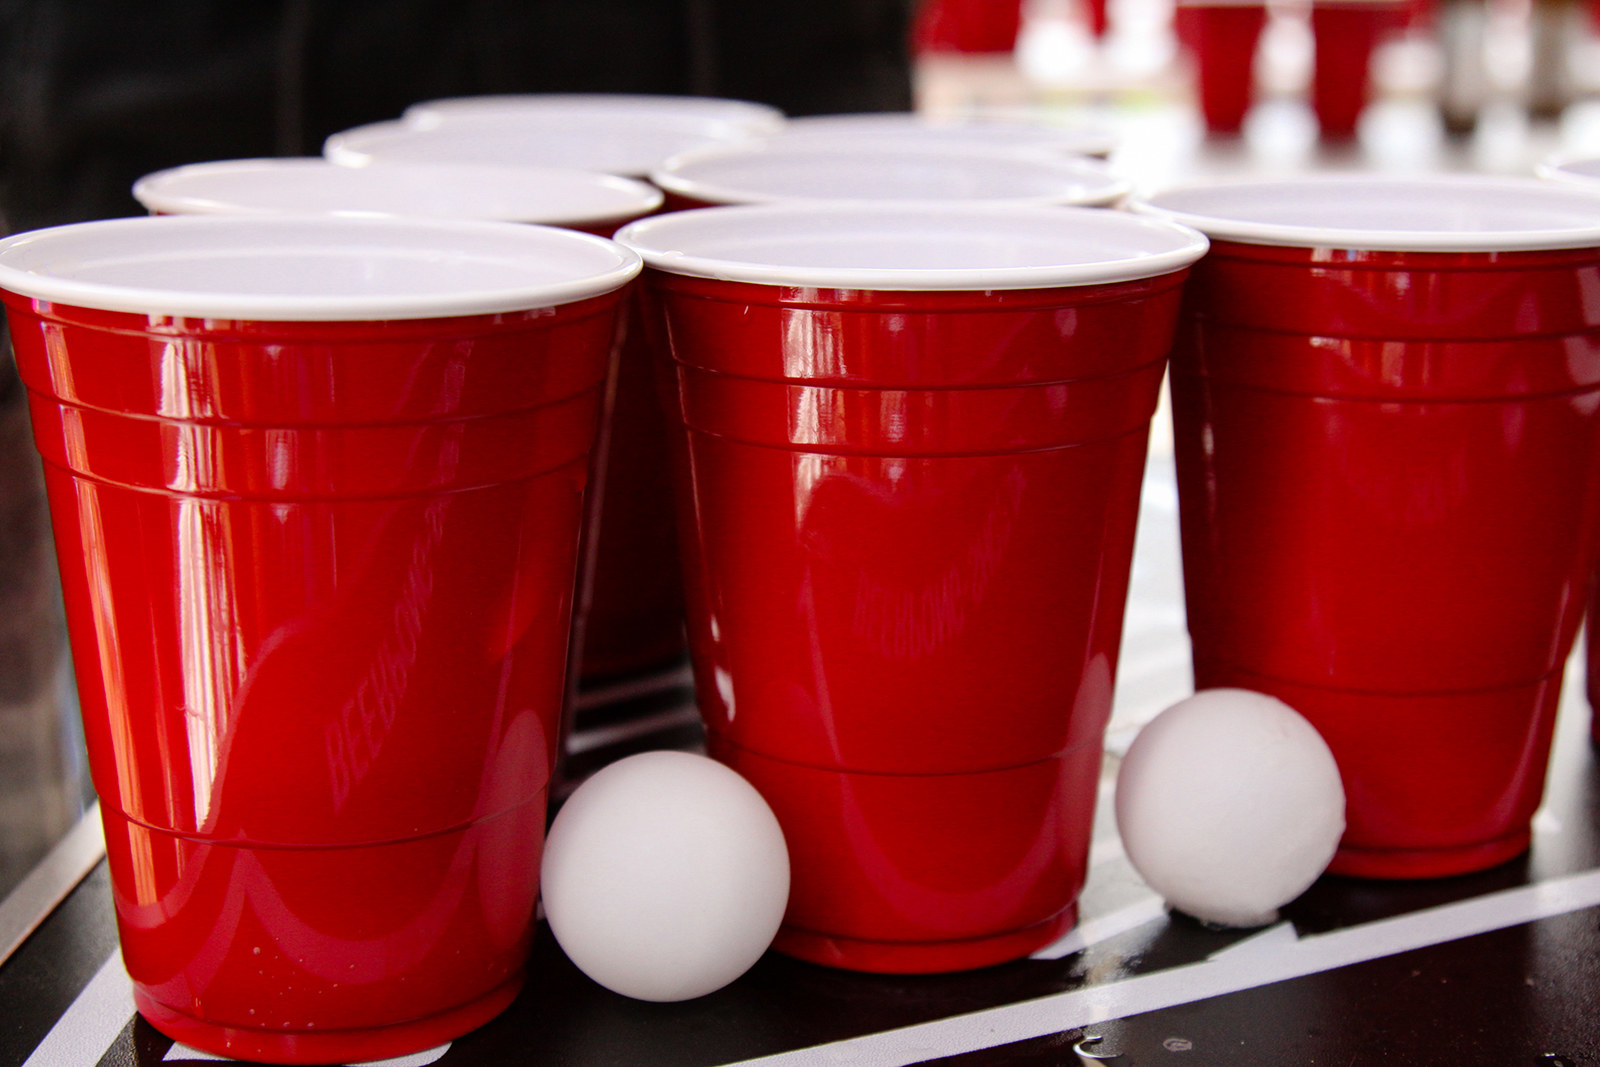 Red plastic cups set up for beer pong.